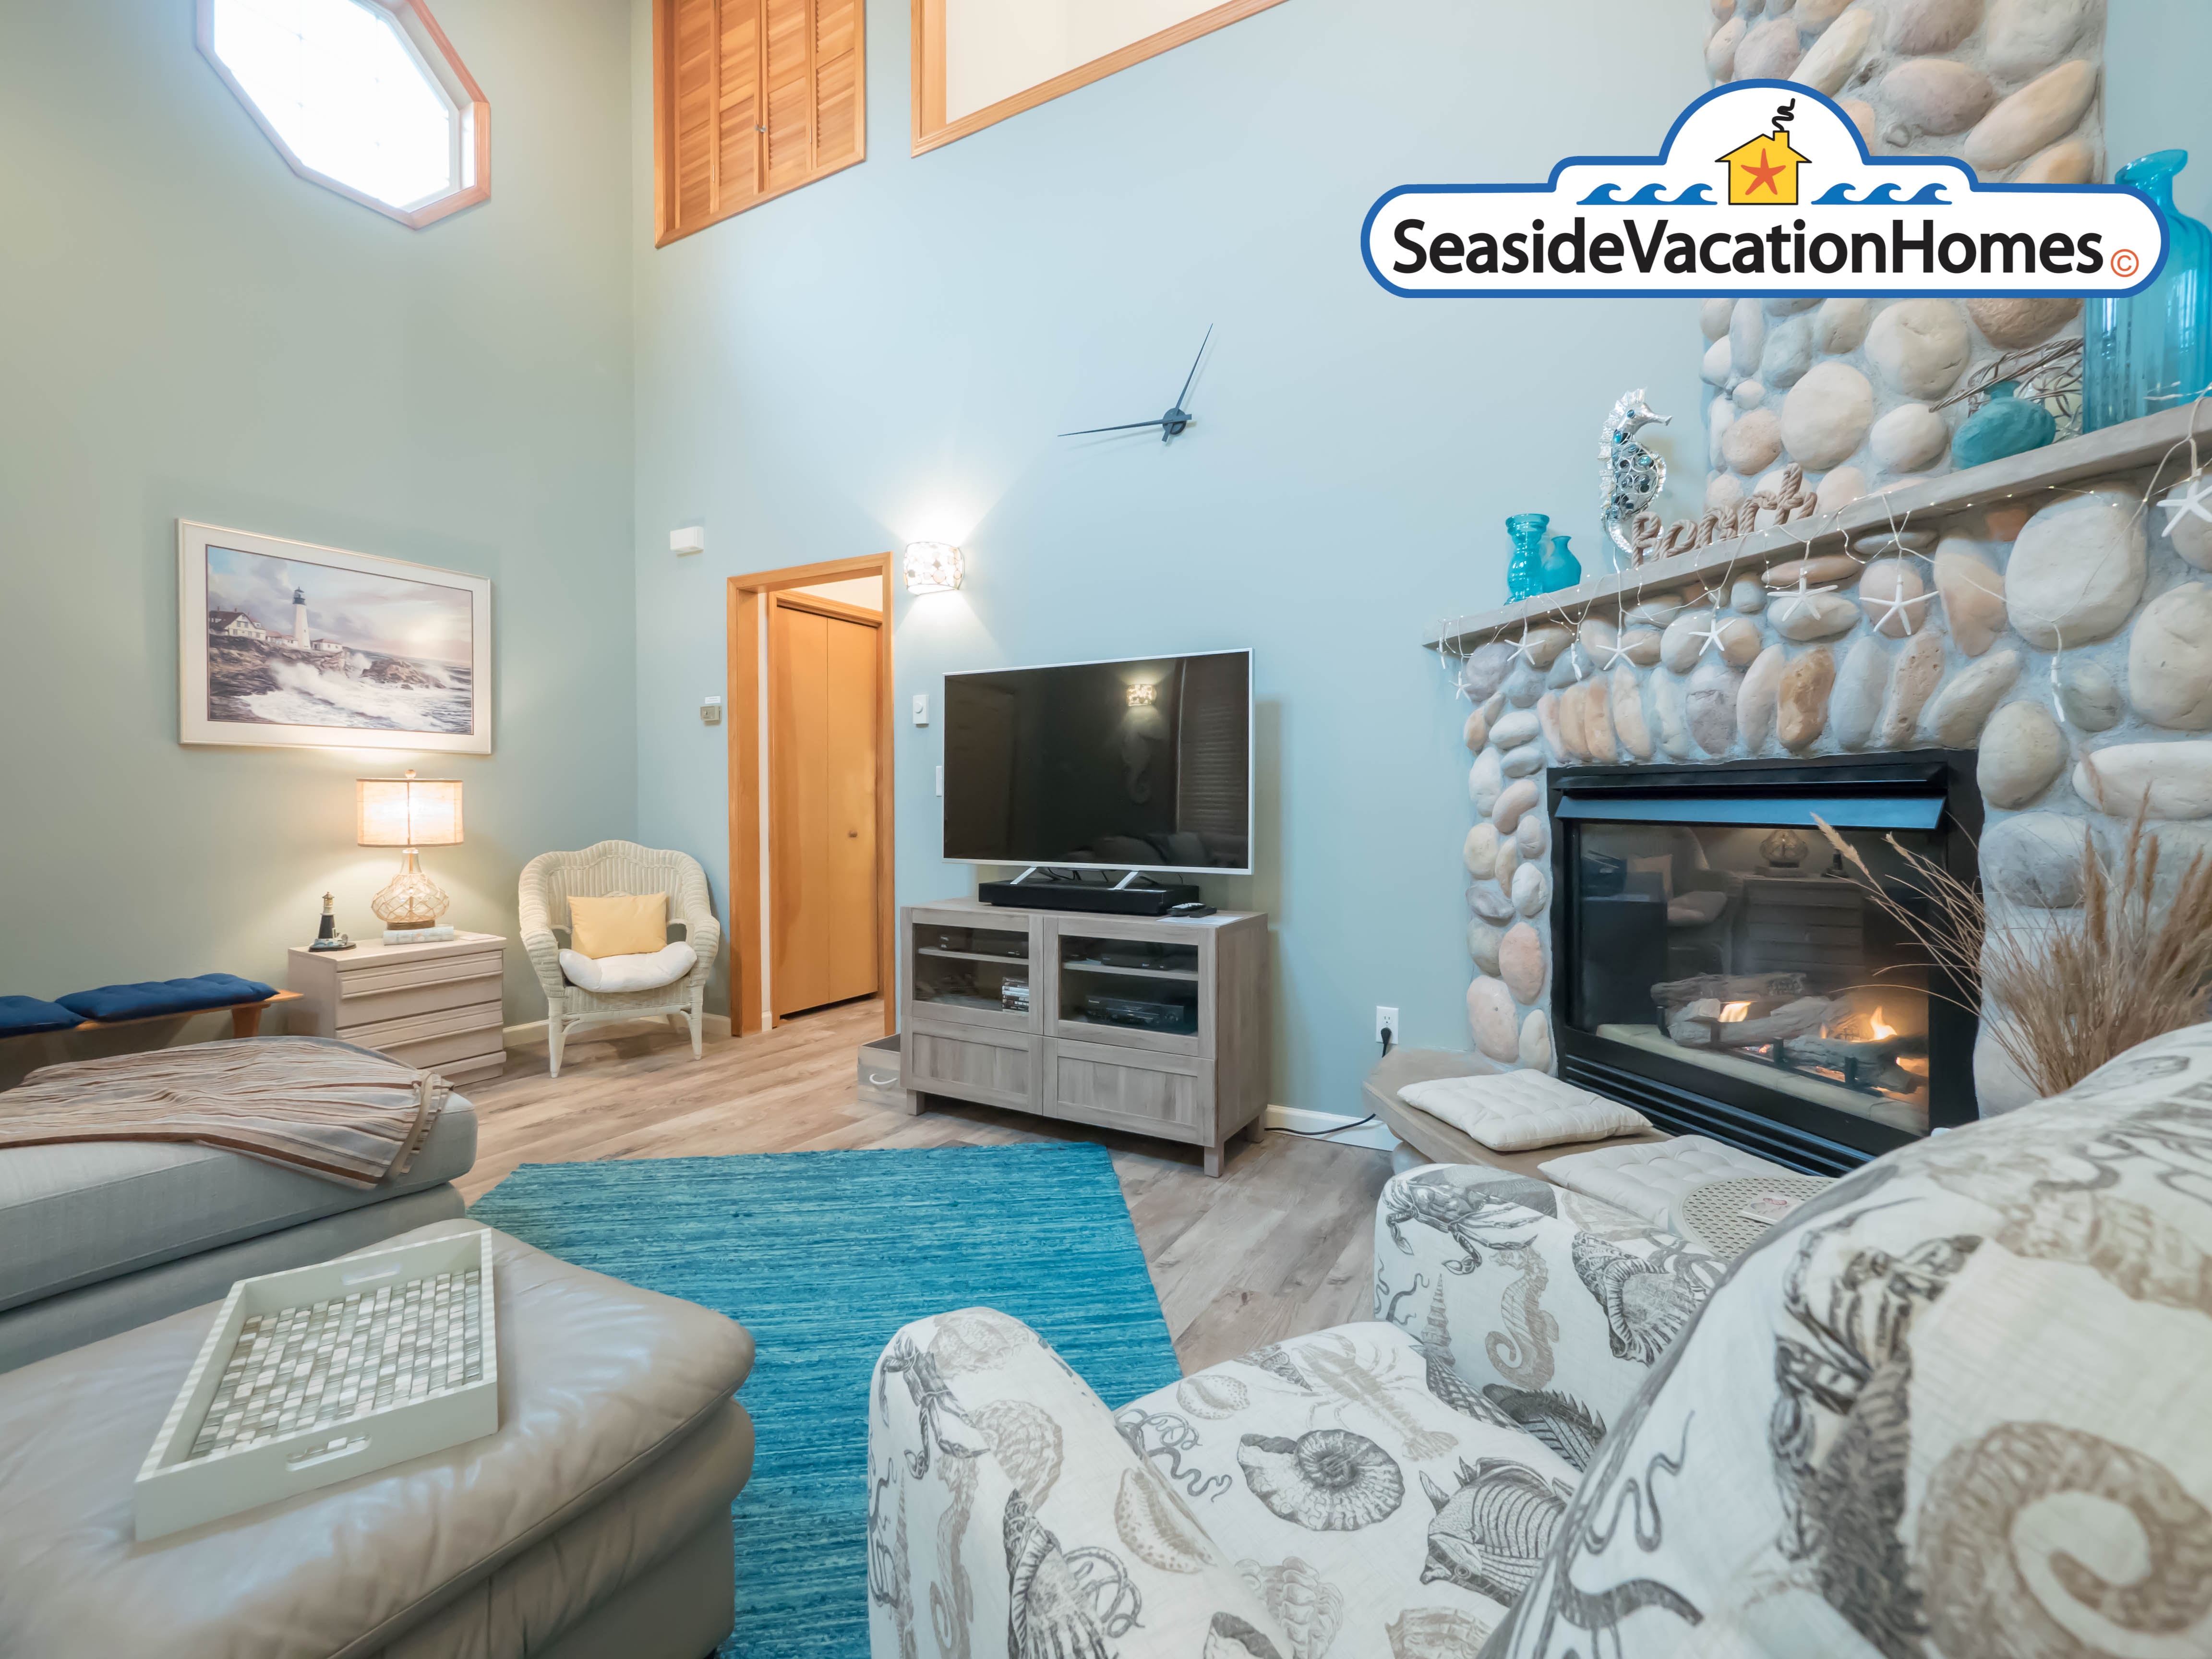 Vacation home rental in Seaside, OR with 4 bedrooms